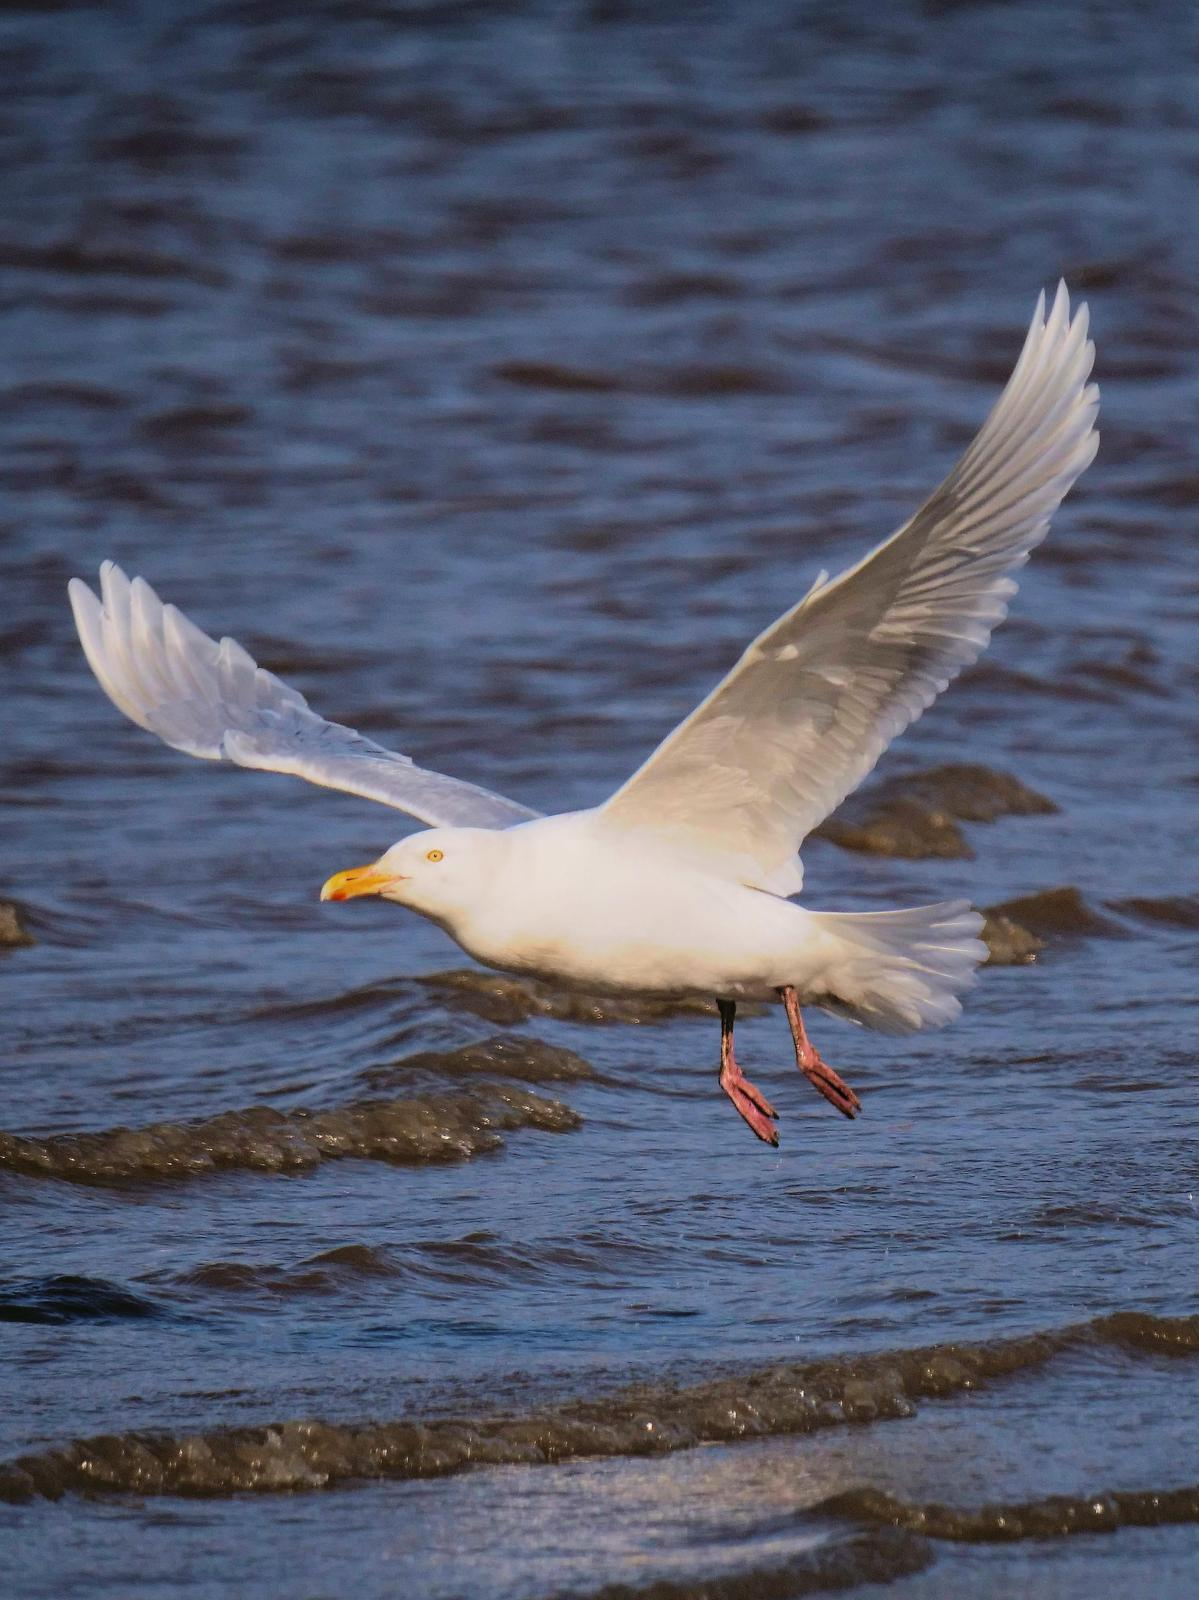 Glaucous Gull Photo by Peter Lowe